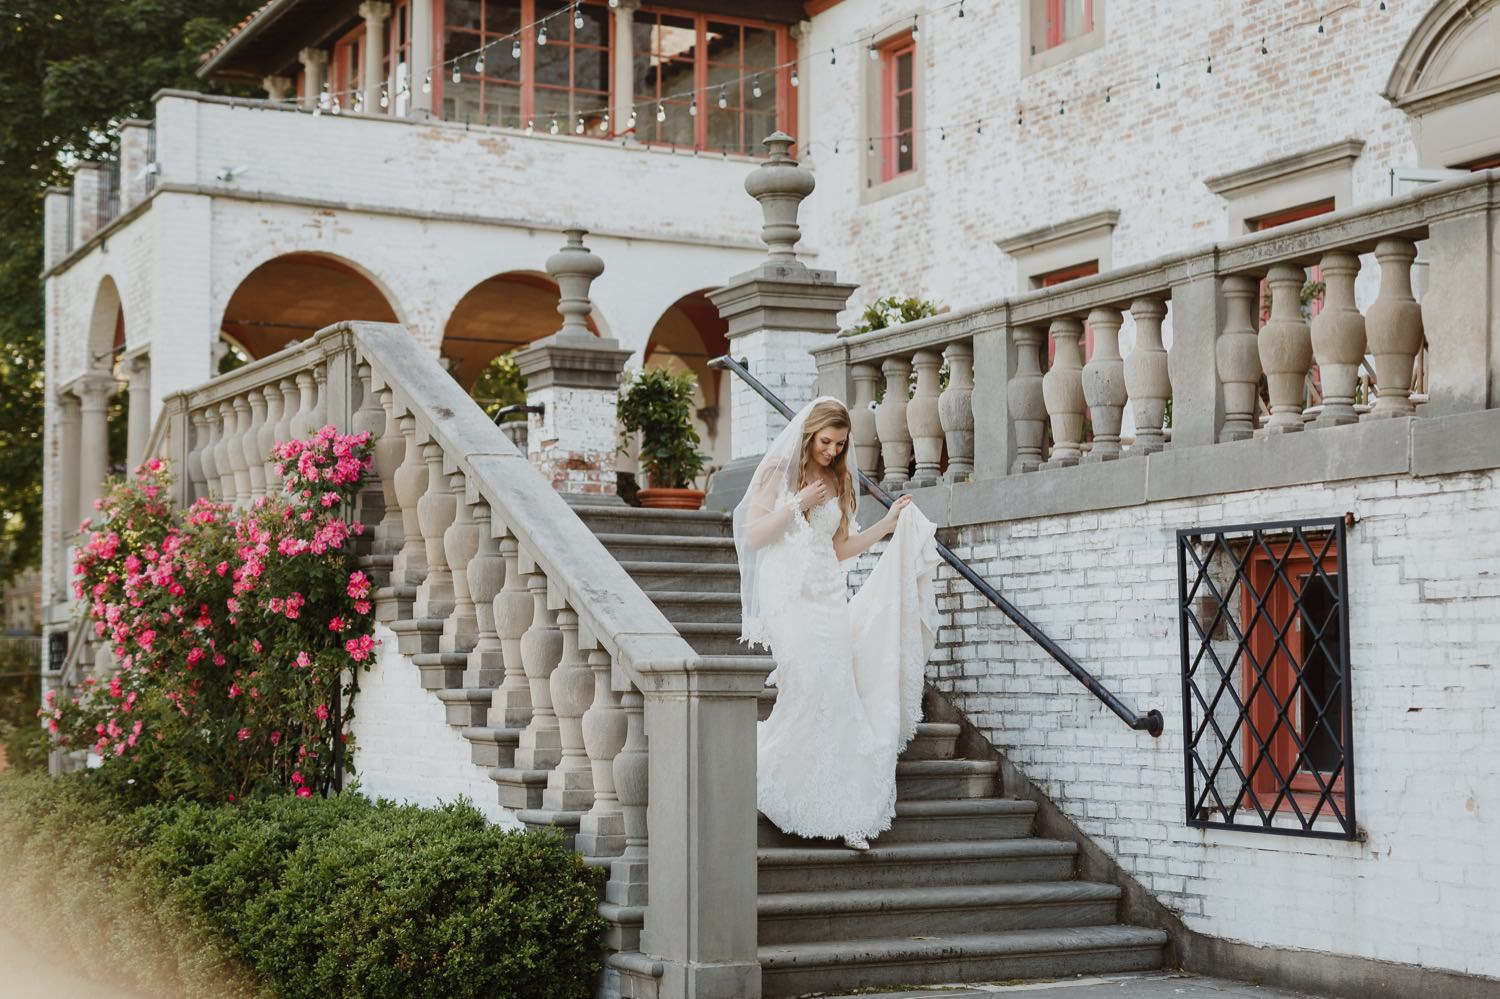 Bride walks down the stairs on the wedding day at Villa Terrace